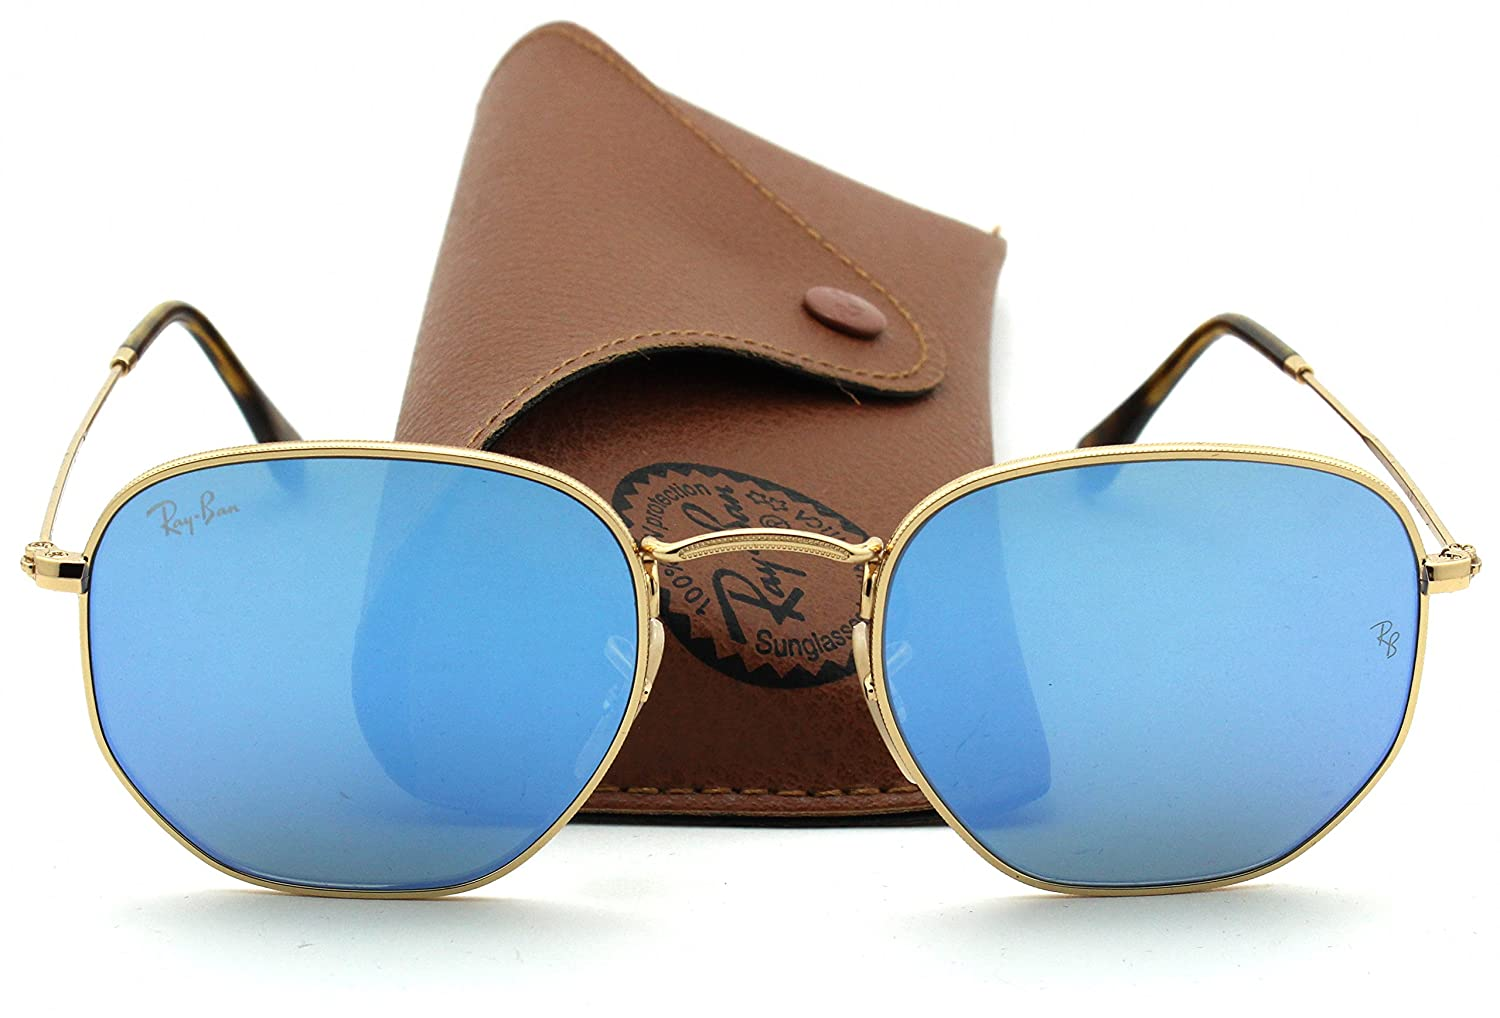 927e181bf49f3 Ray-Ban RB3548N HEXAGONAL FLAT LENSES Sunglasses Blue Gradient Flash Lens  001 9O